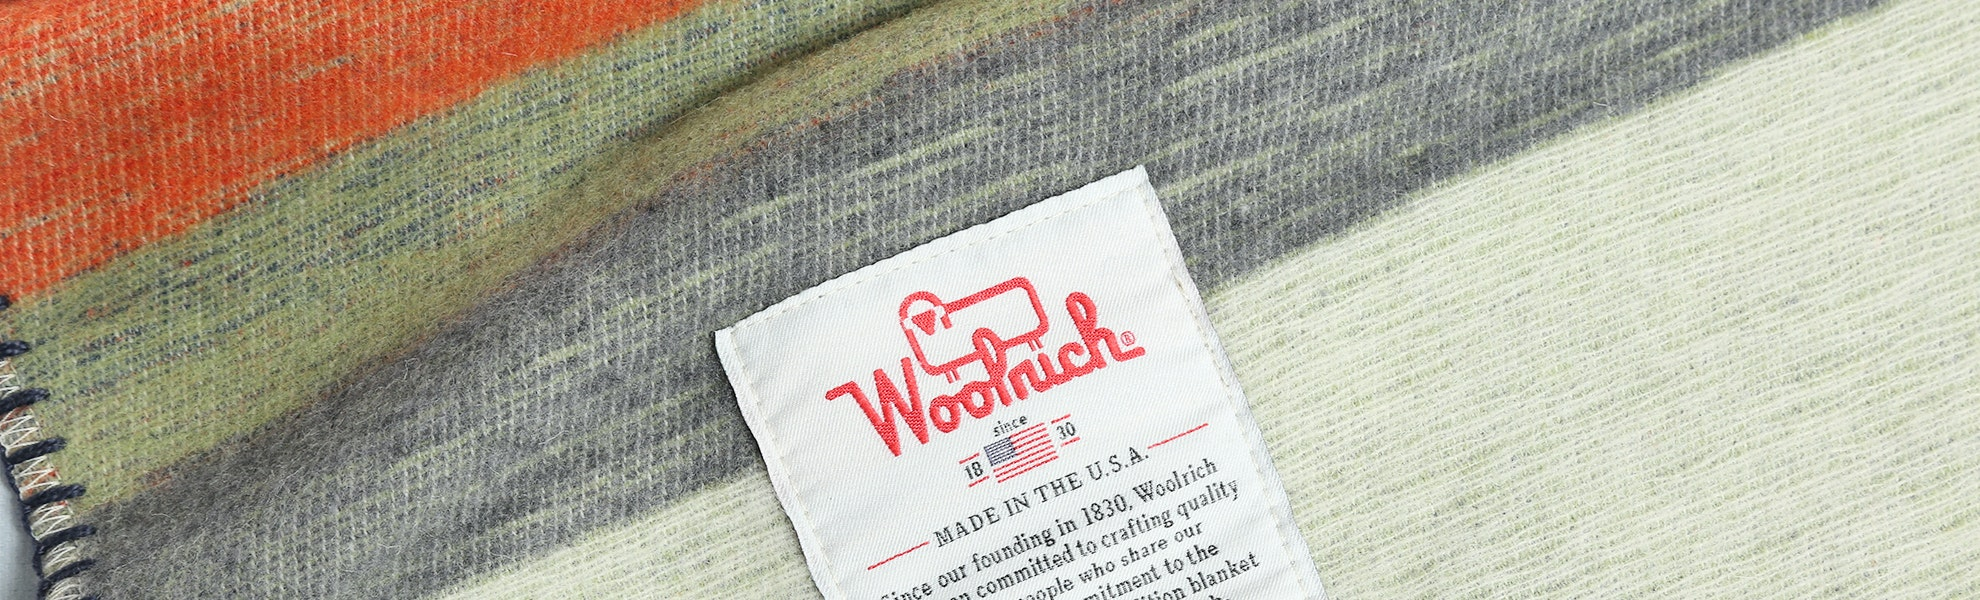 Woolrich Wool Blankets – Anniversary Giveaway